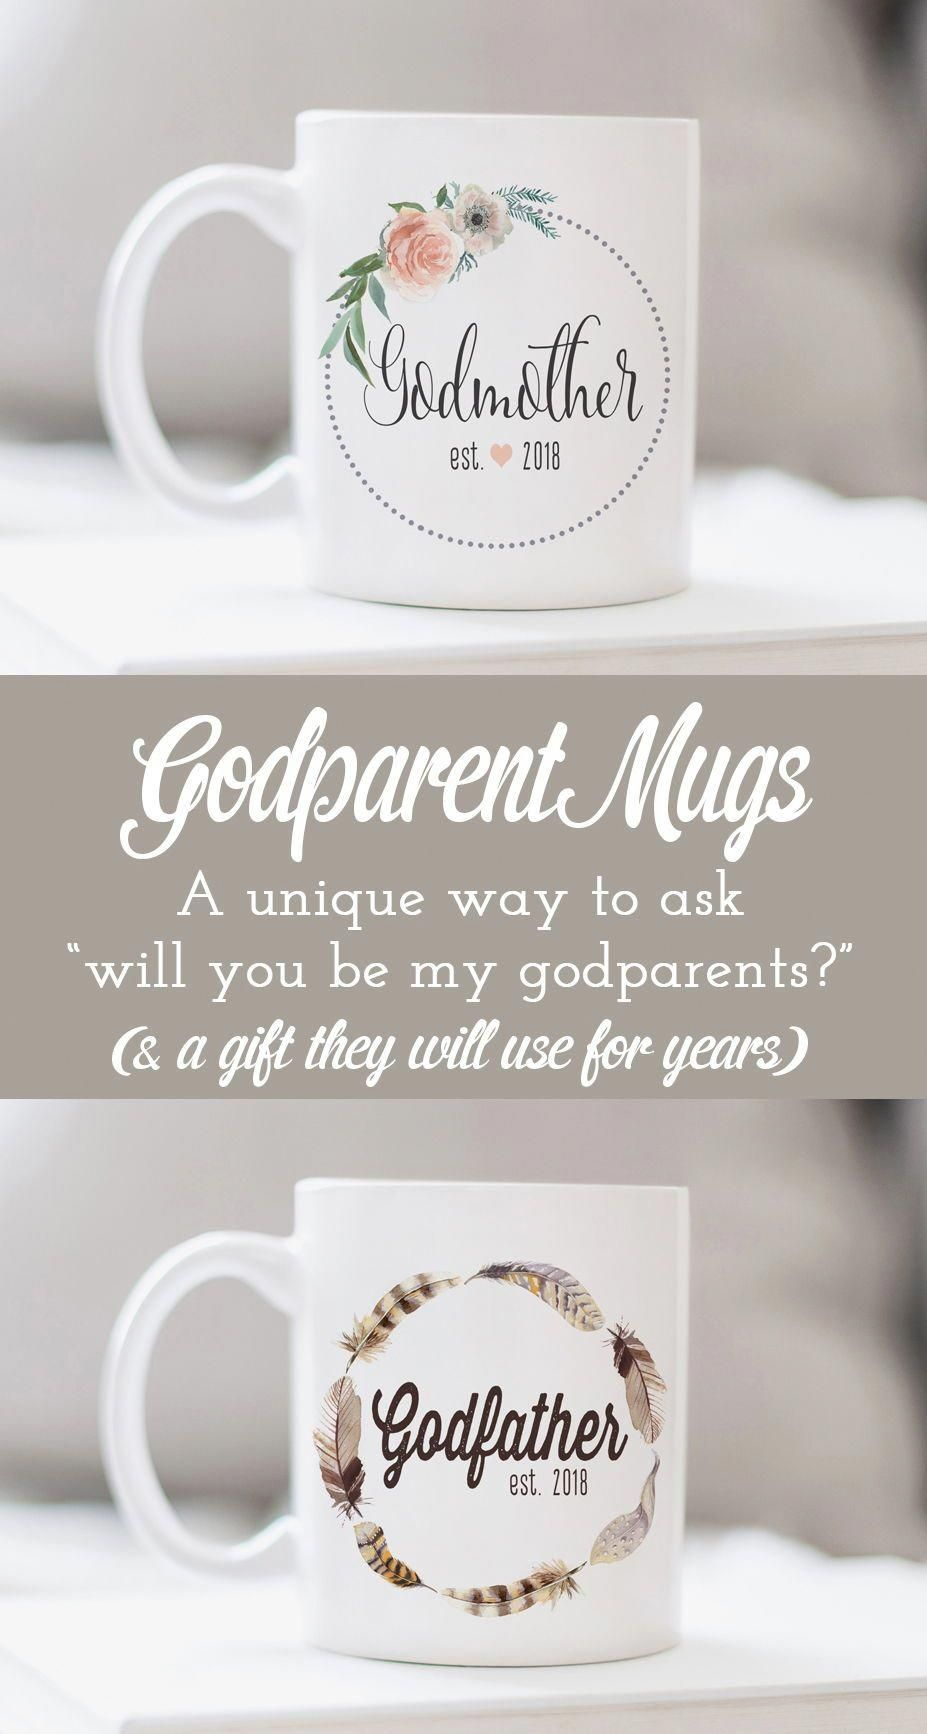 These godparent mugs make a unique godparent proposal or